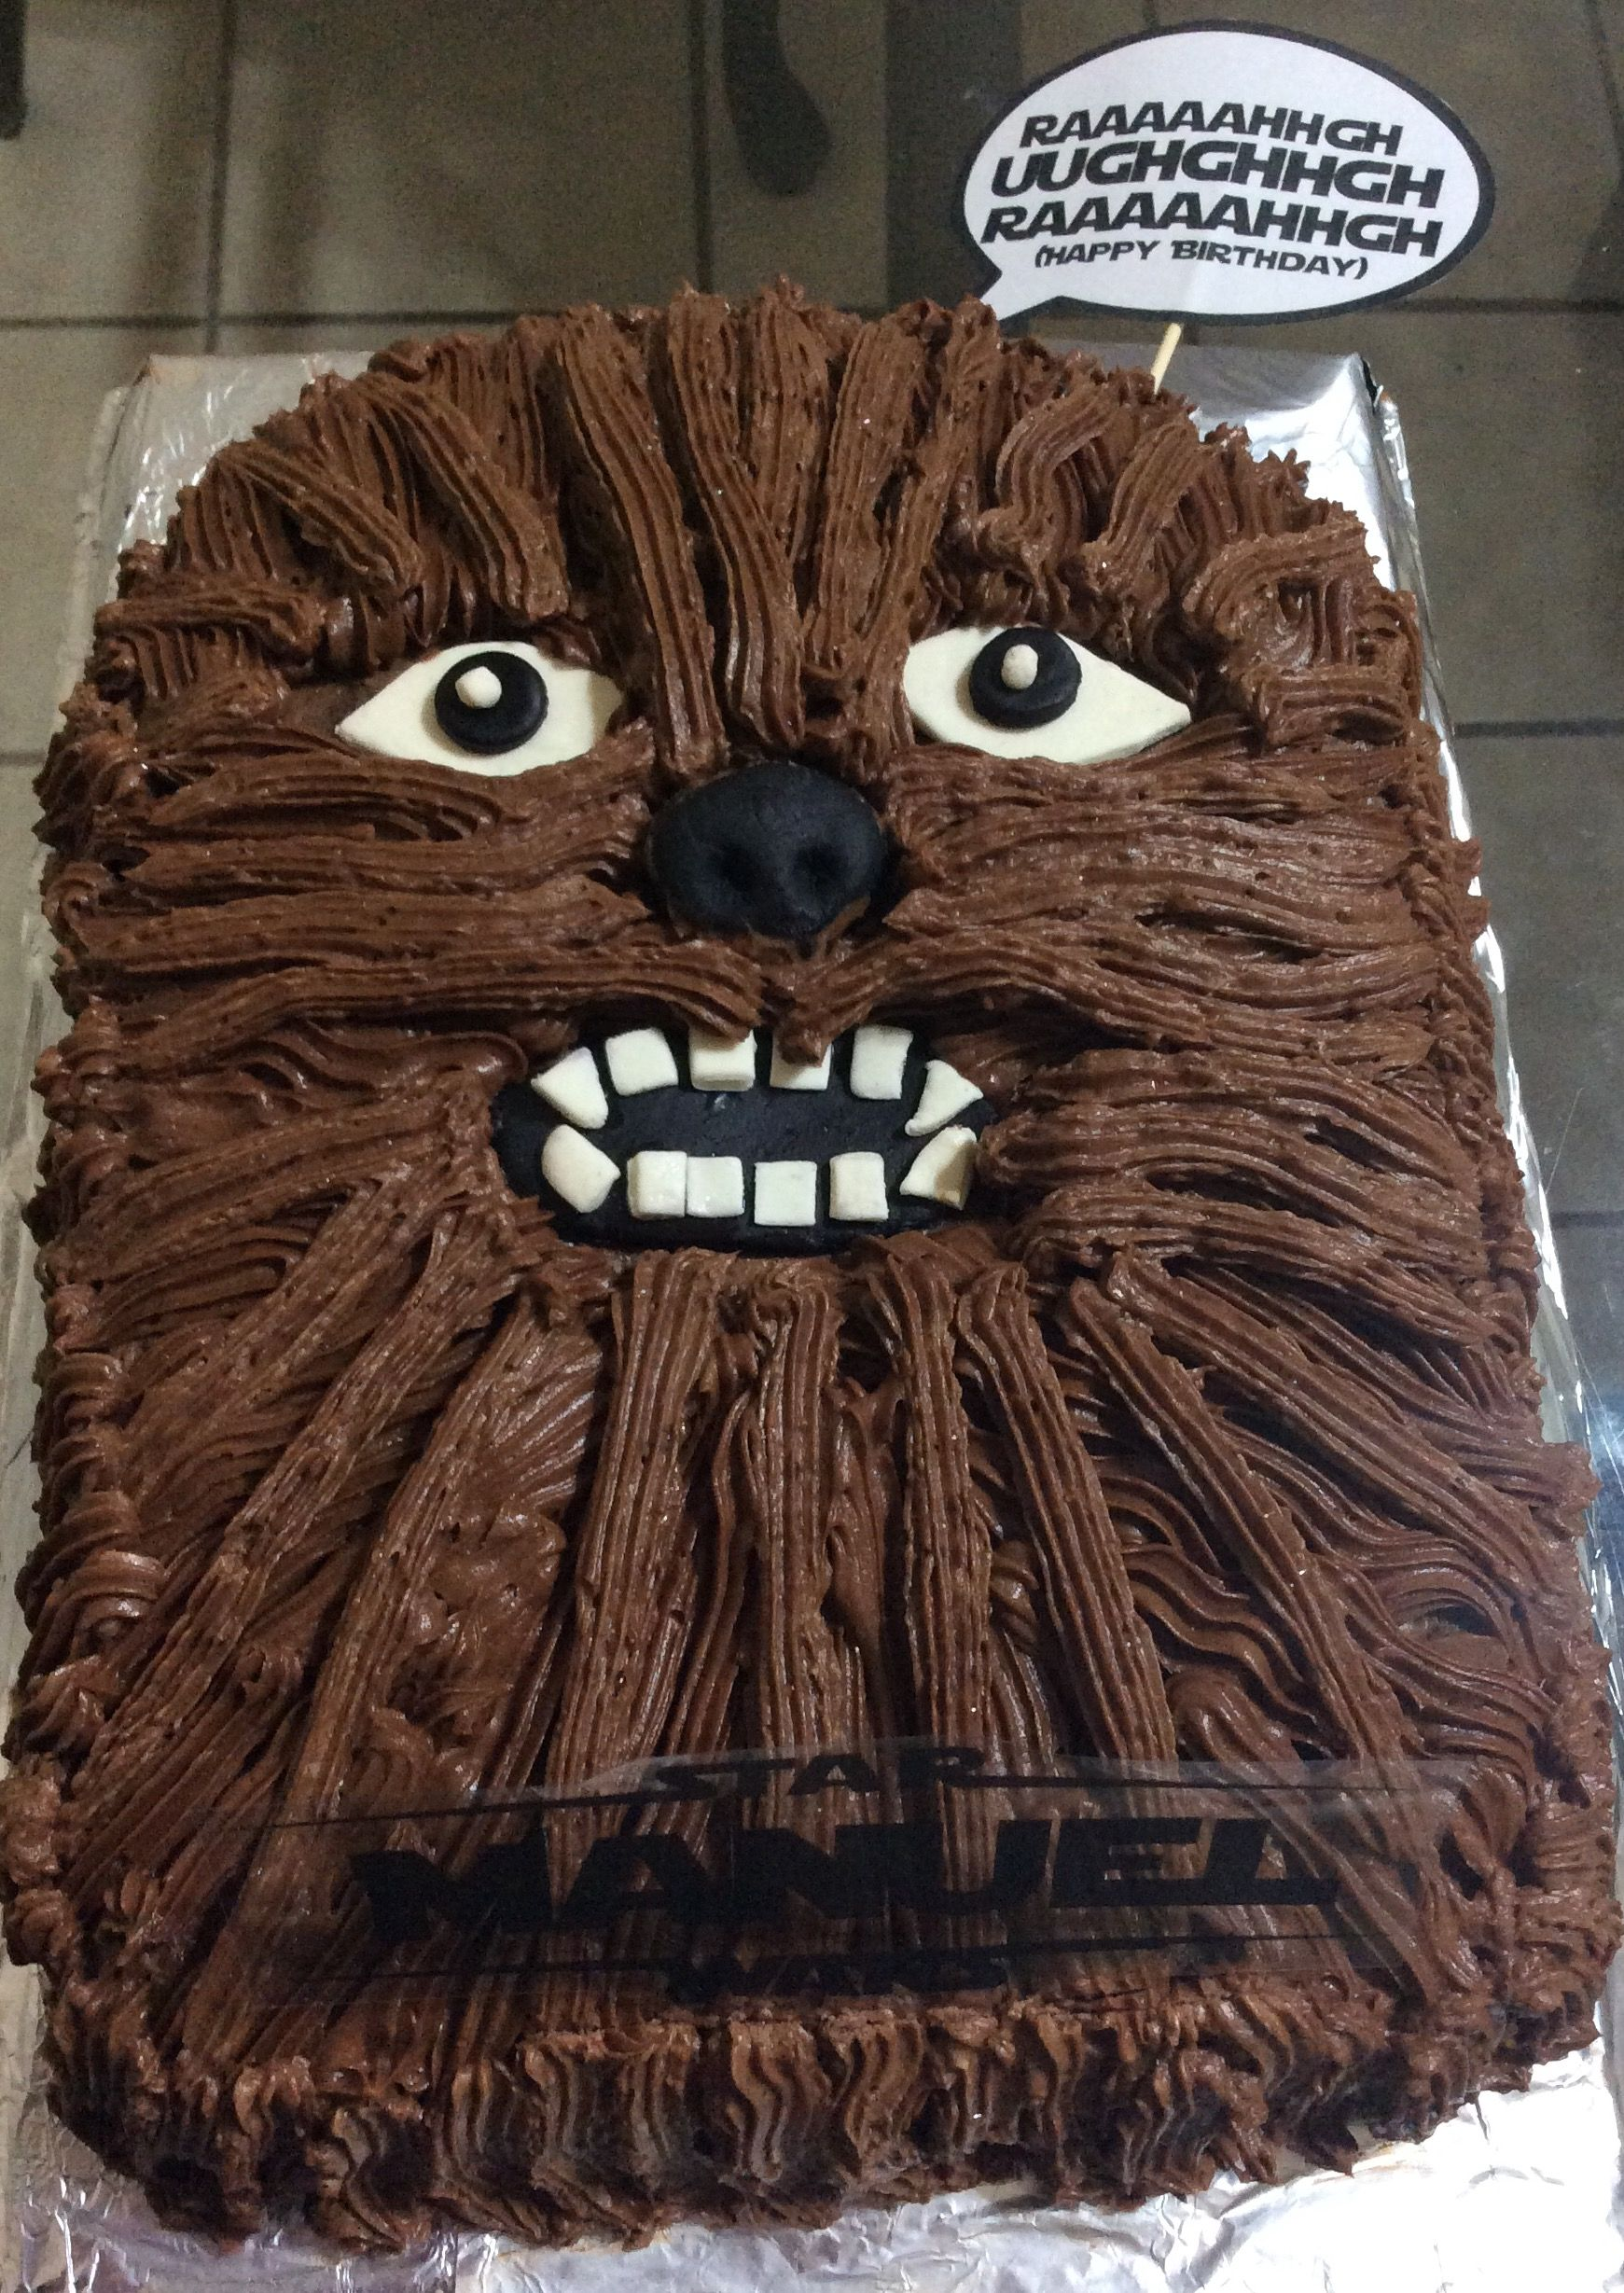 Chewbacca Starwars Cake Birthday Yummy Treats Pinterest